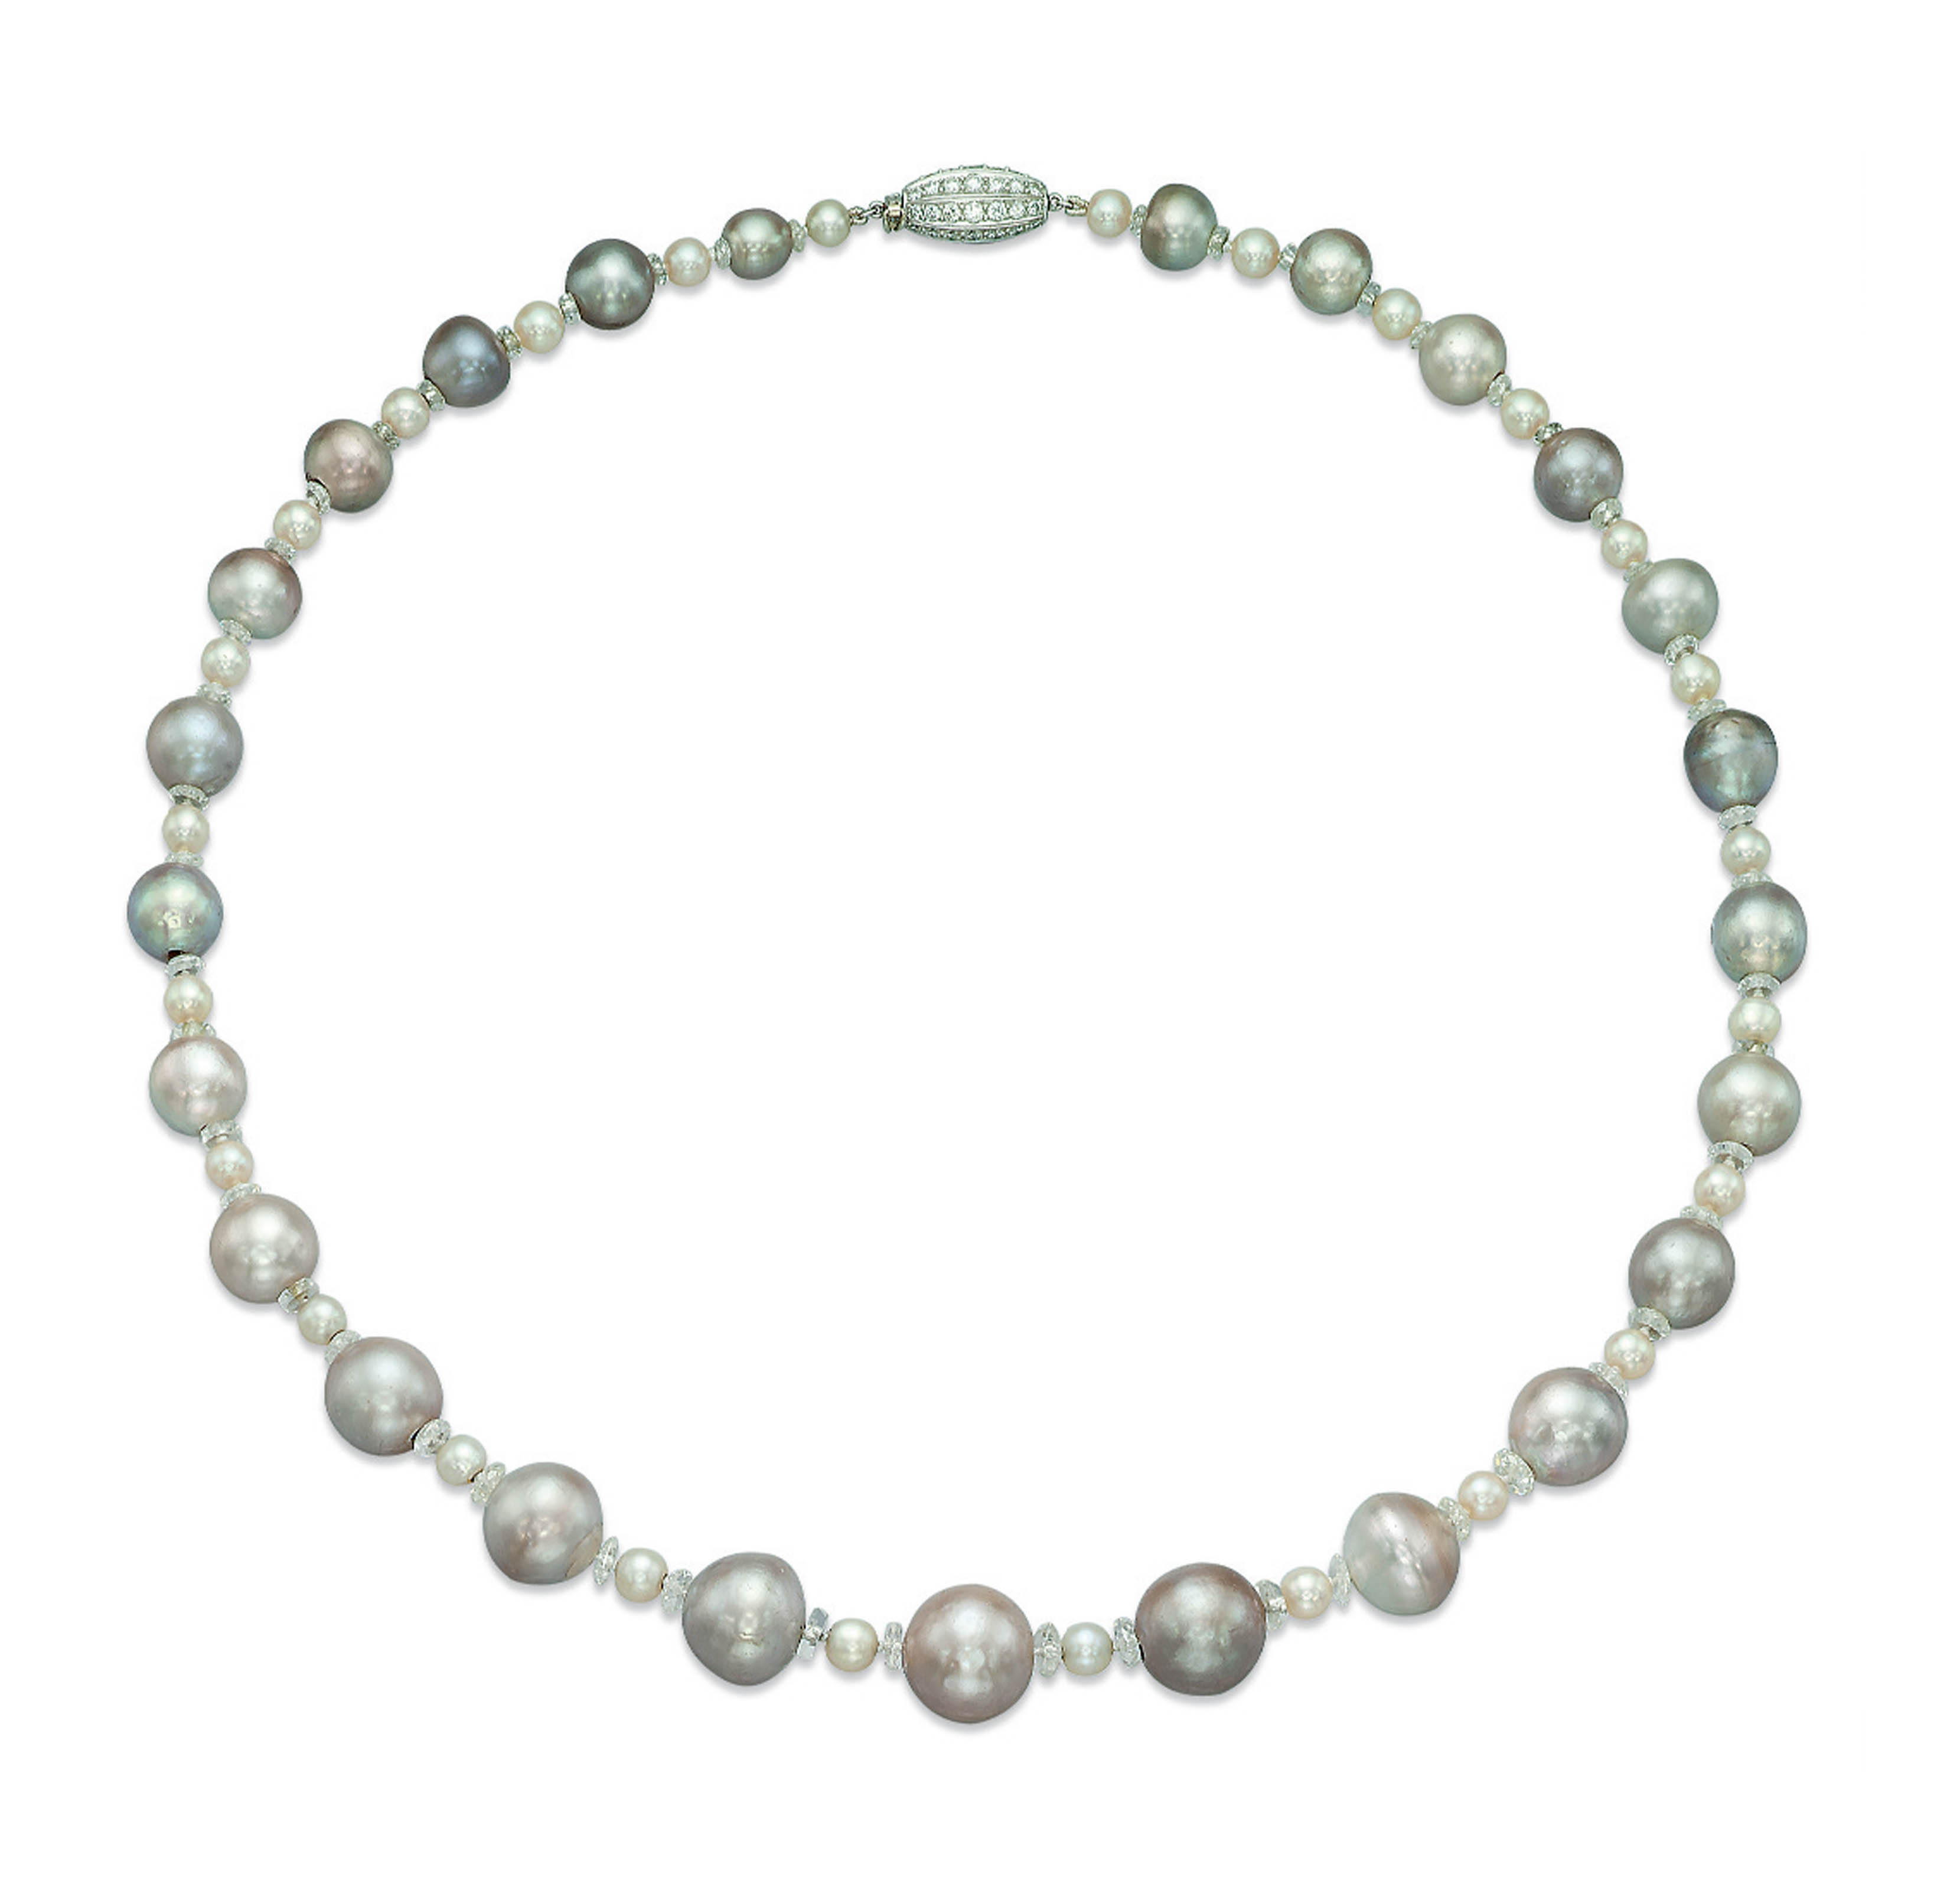 AN ELEGANT NATURAL PEARL, DIAMOND AND ROCK CRYSTAL NECKLACE, BY VAN CLEEF & ARPELS